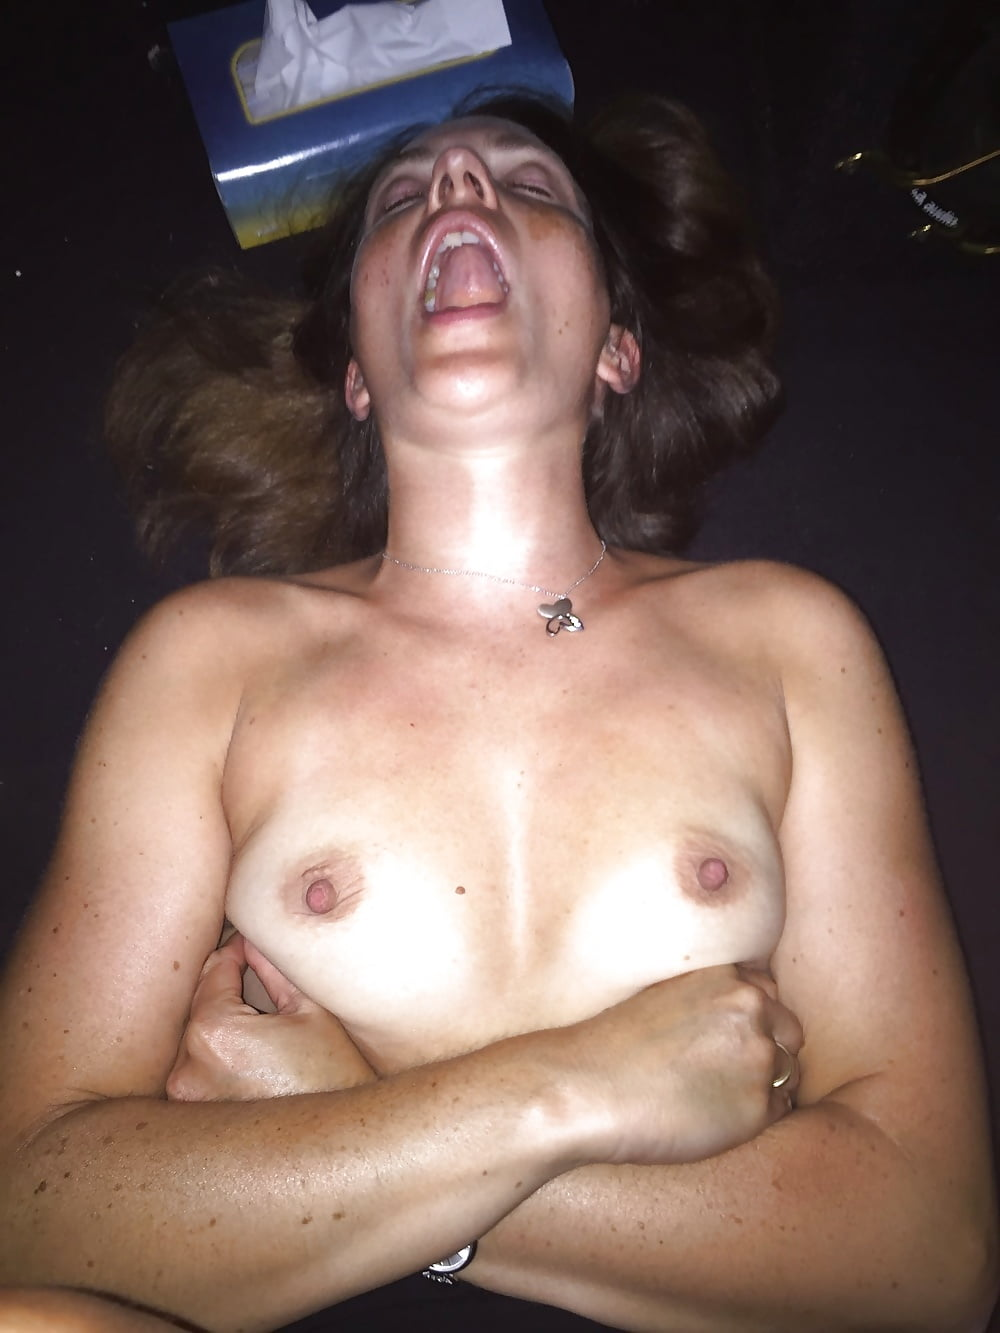 Wife flashing Exhibitionist Review